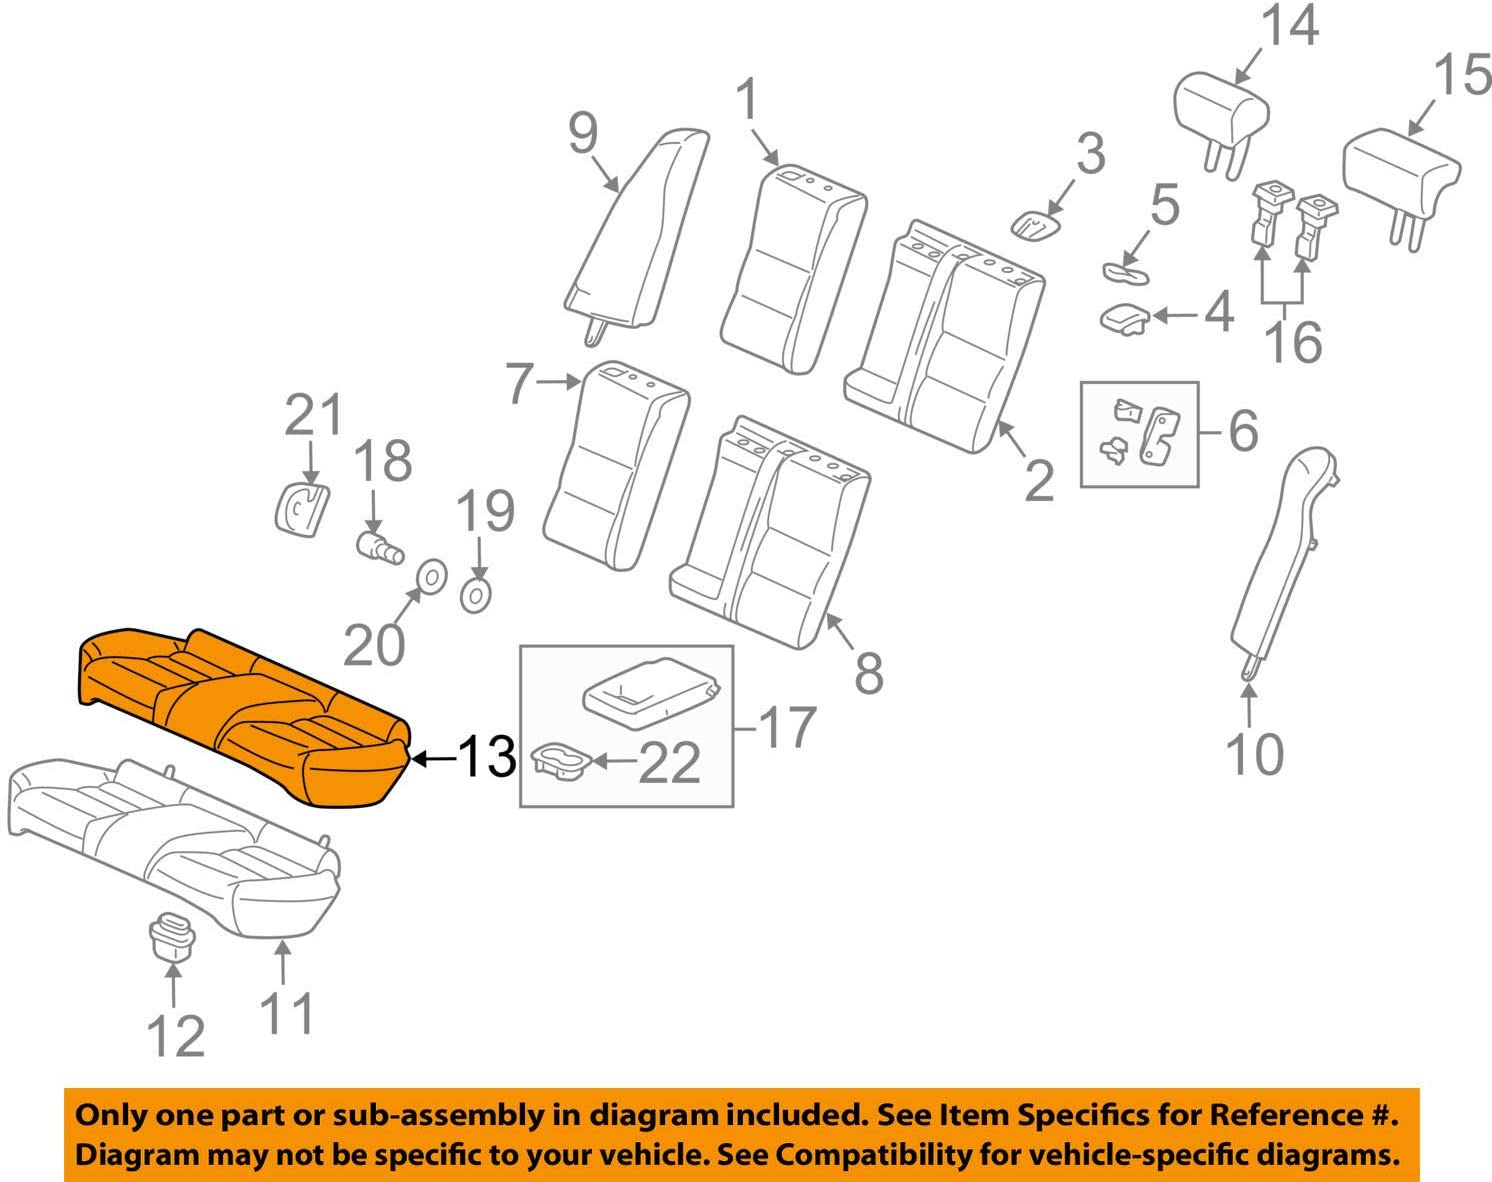 Honda Genuine 82131-TP6-A01ZB Outstanding Seat Cover Rear Trim Cushion depot